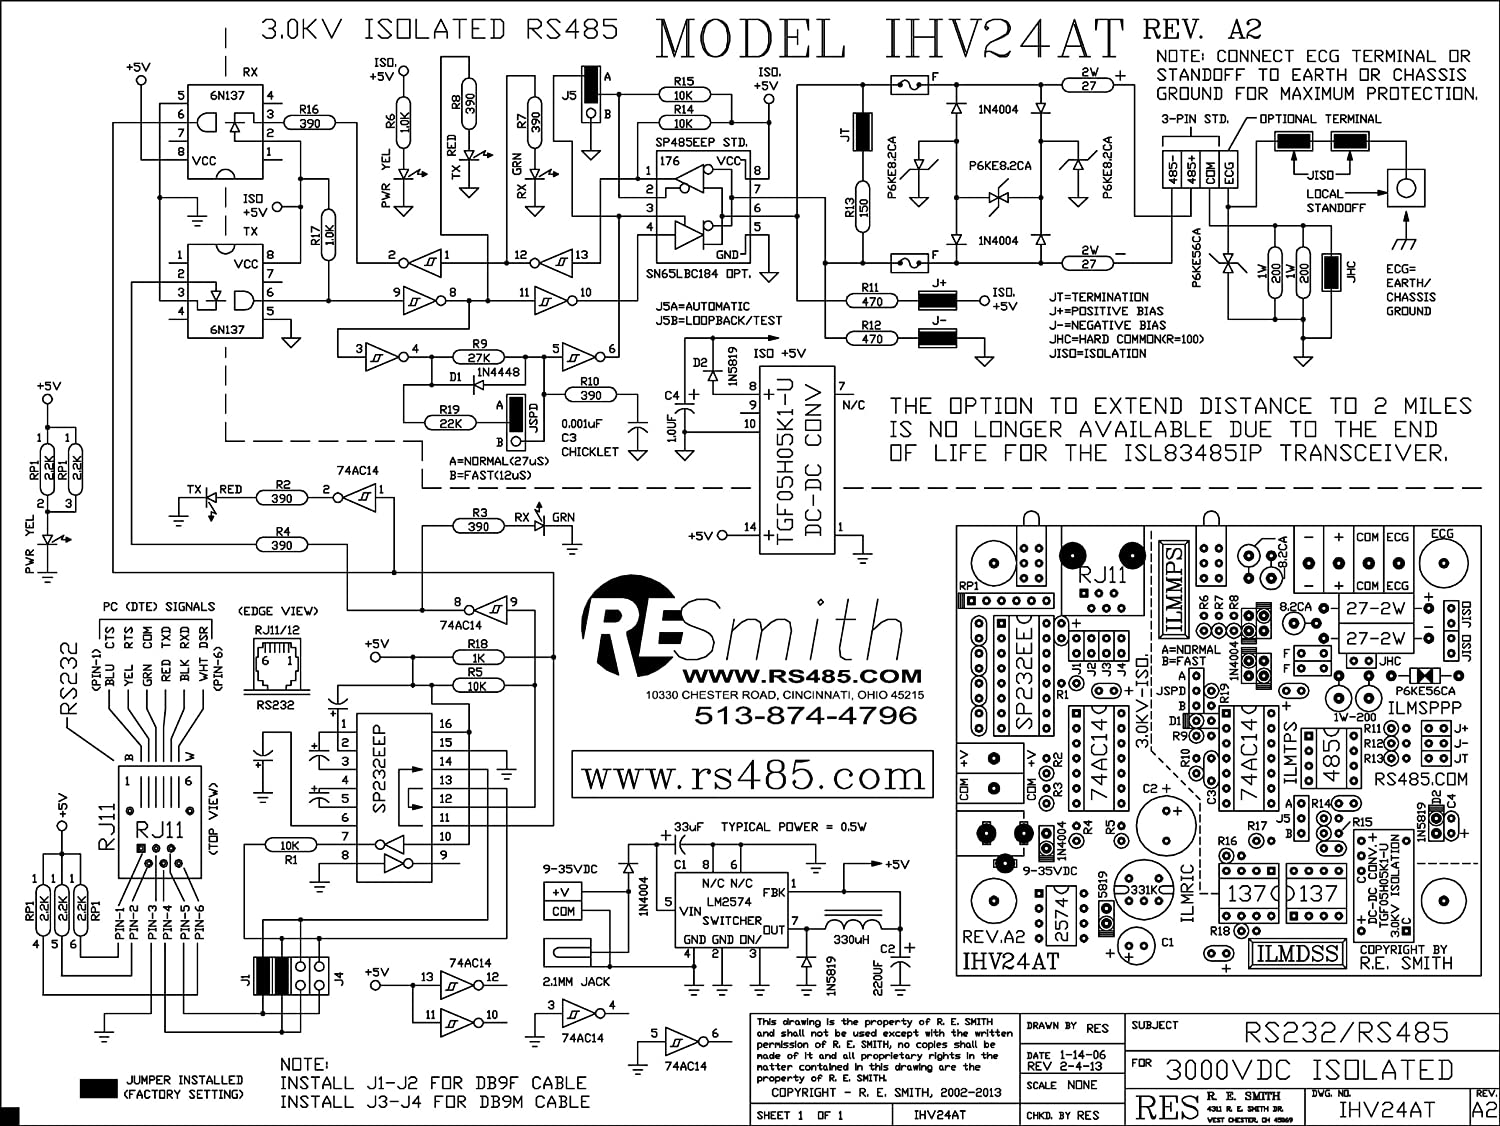 Ihv24at A2 30kv Isolated Rs232ltgtrs485 Rj11 Wiring Diagram Duplex Operation Industrial Strength Converter Assembled Circuit Board Only Electronics